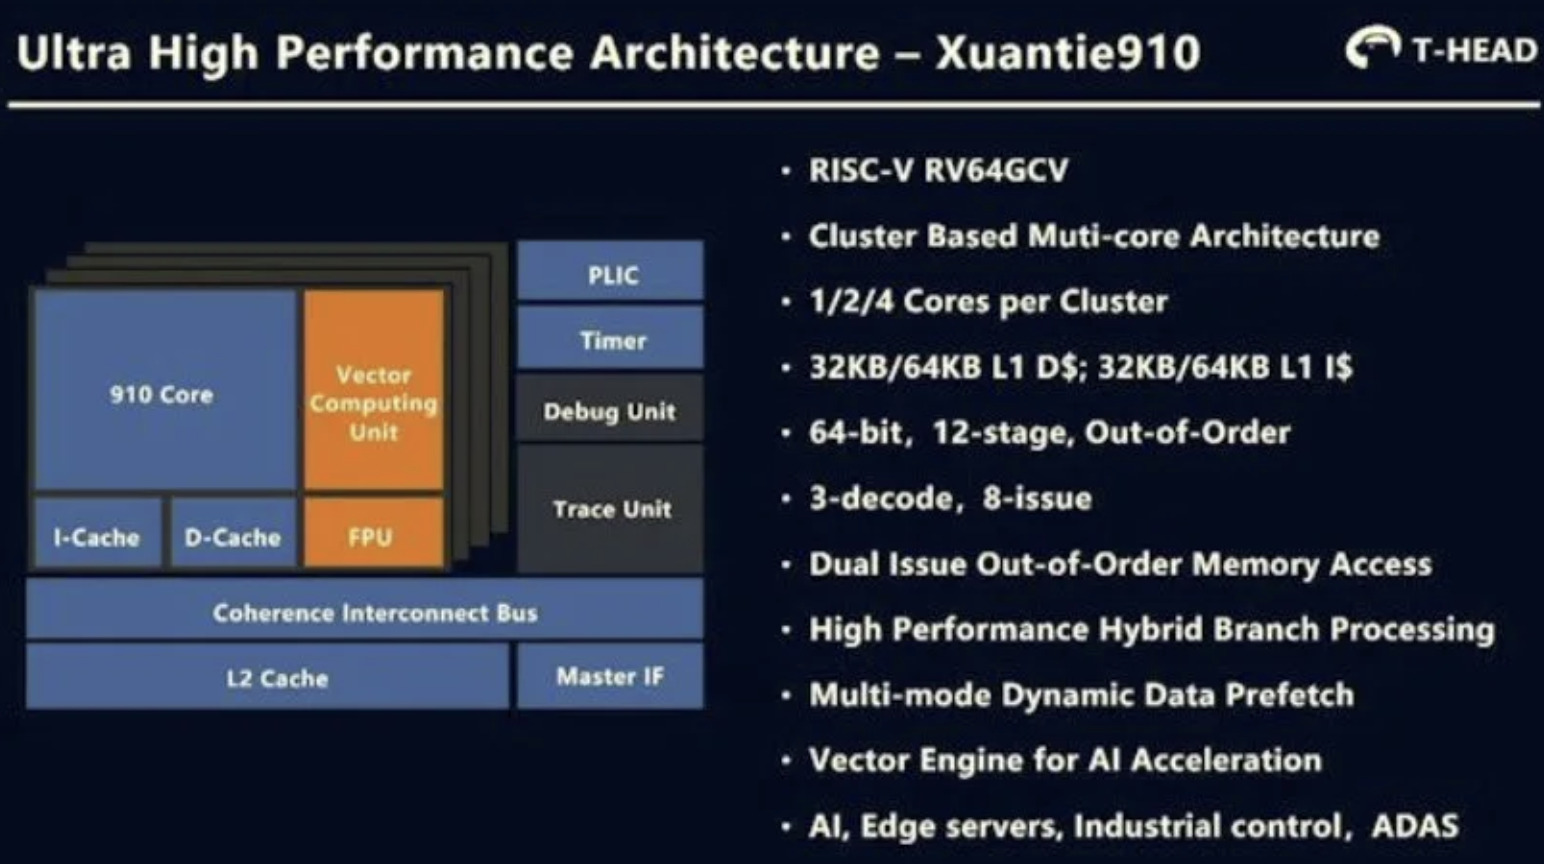 Alibaba Speaks More on it's XT910 RISC-V Core Claimed to be Faster Than An Arm Cortex-A73